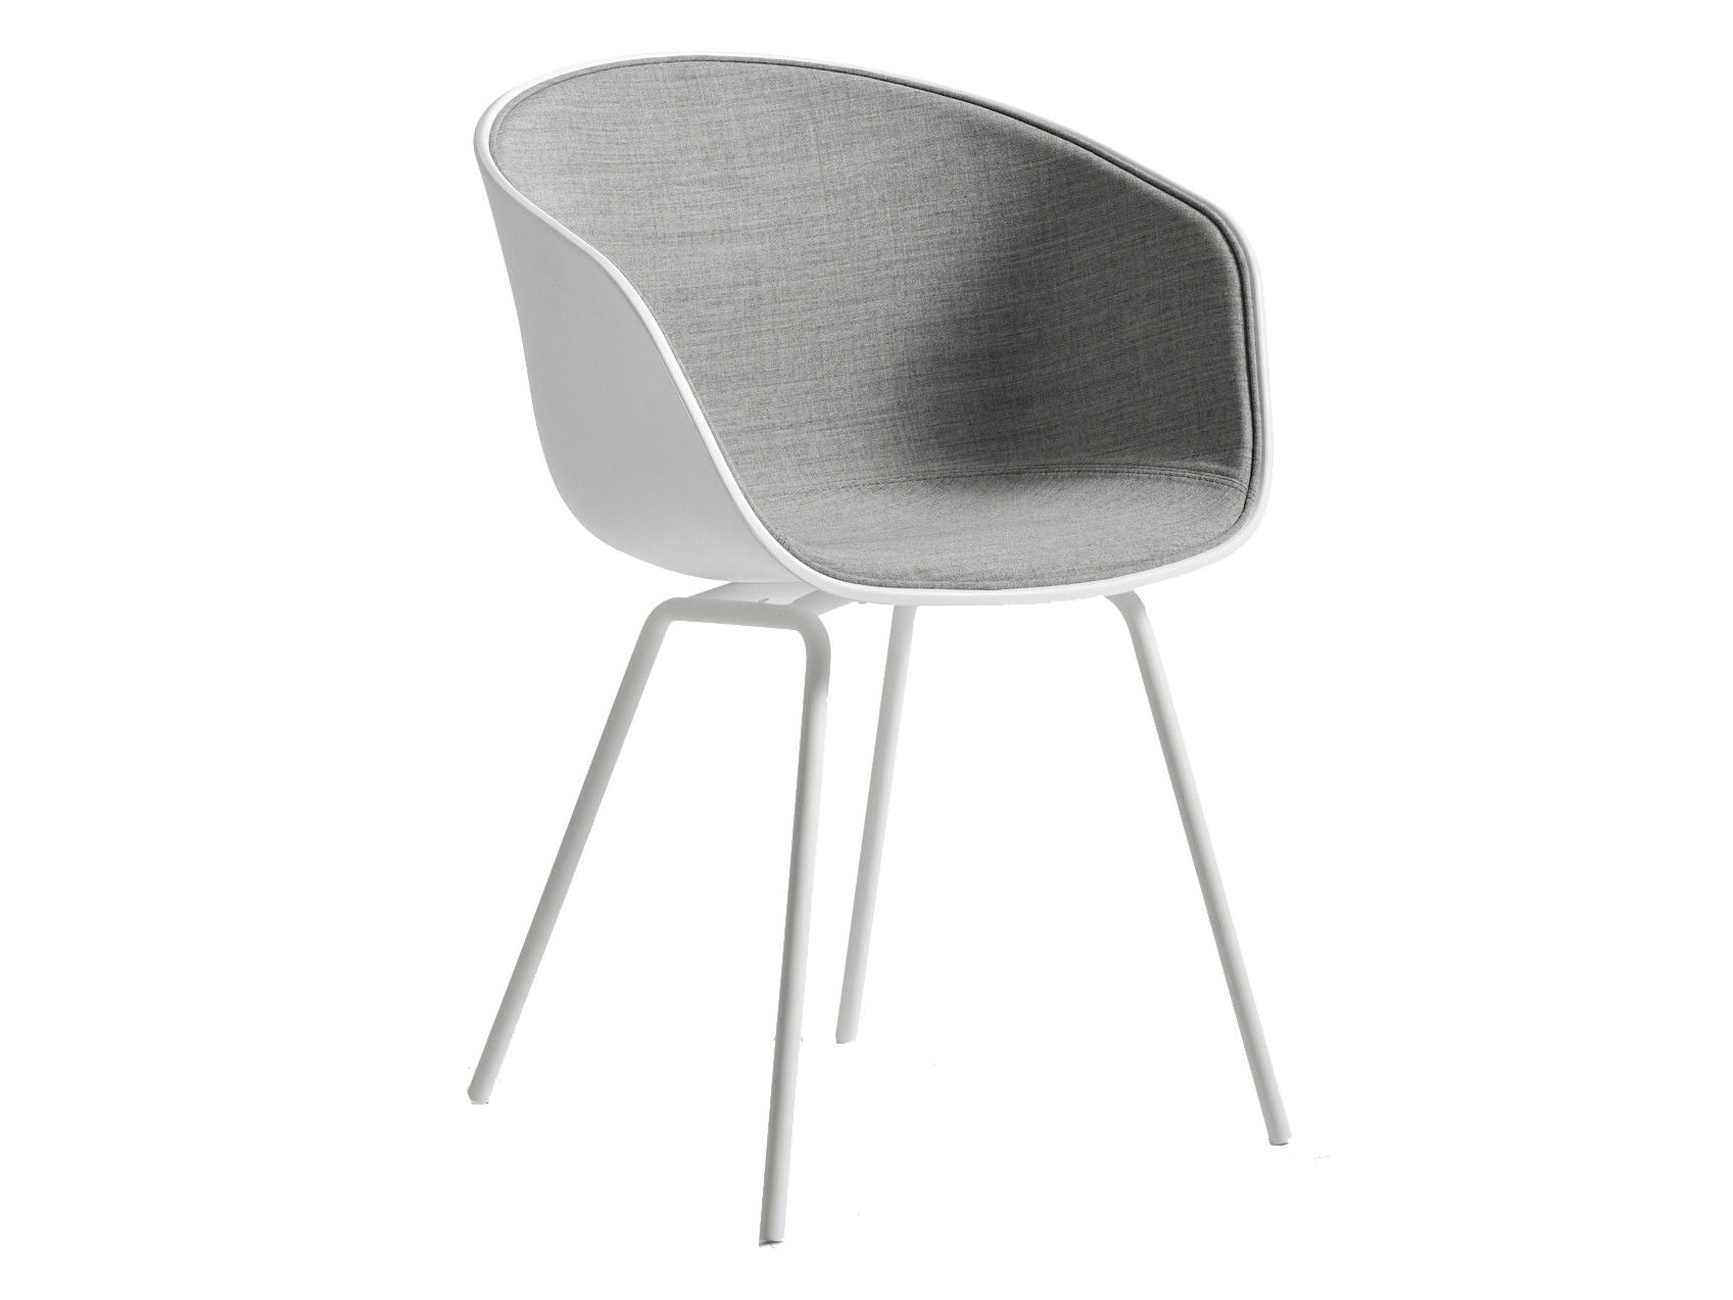 Stof Voor Stoelen.Stoel About A Chair Aac26 Stof Hay 315 Incl Btw D